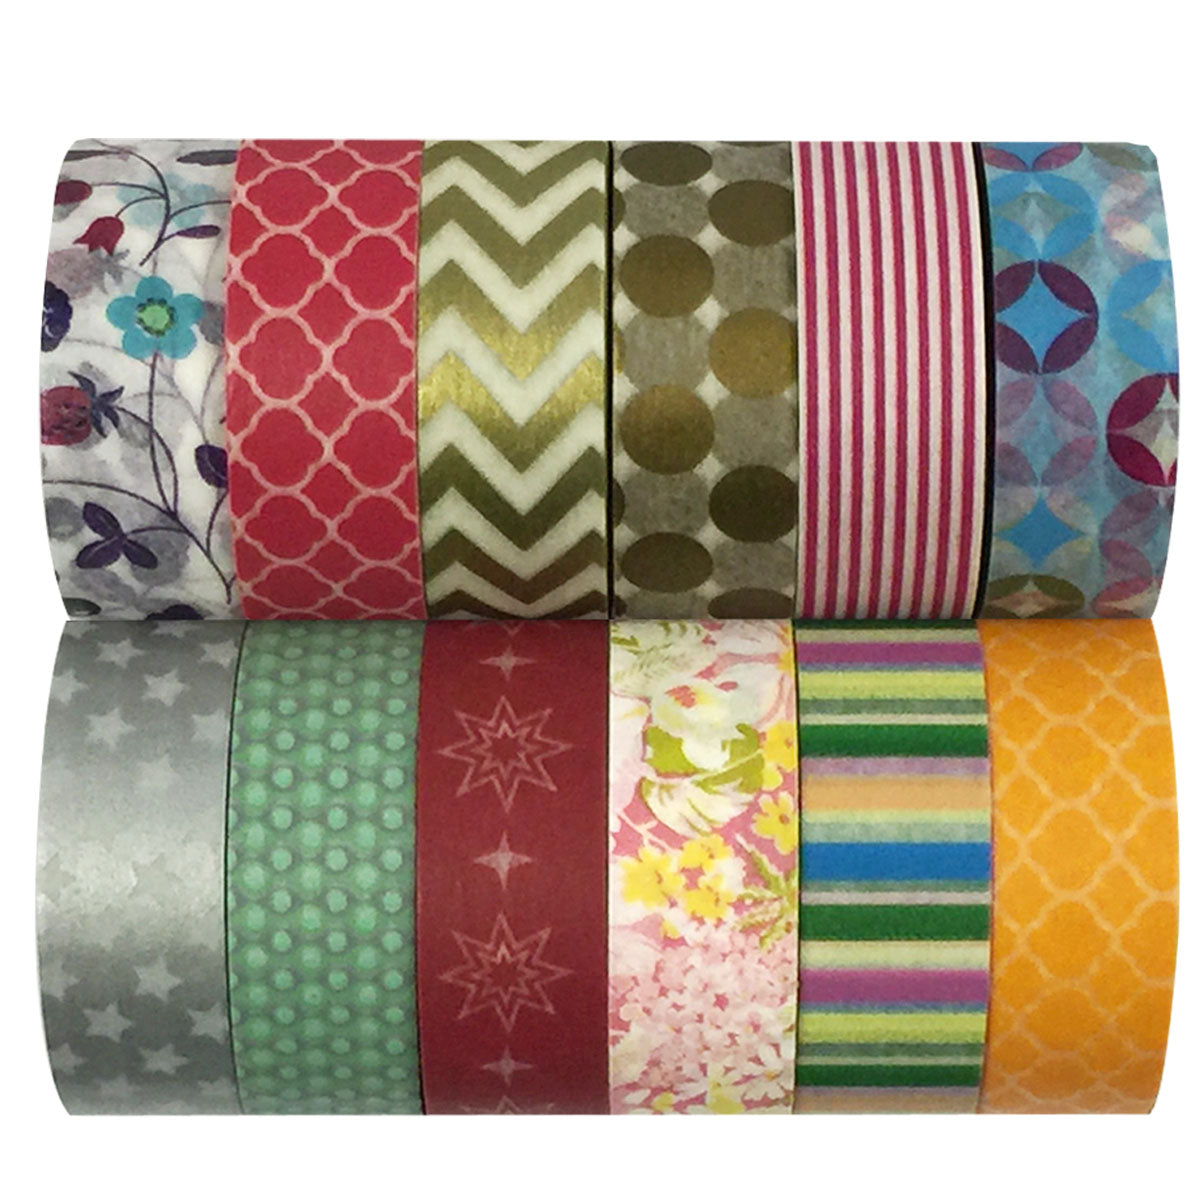 Wrapables Washi Tapes Decorative Masking Tapes, Set of 12